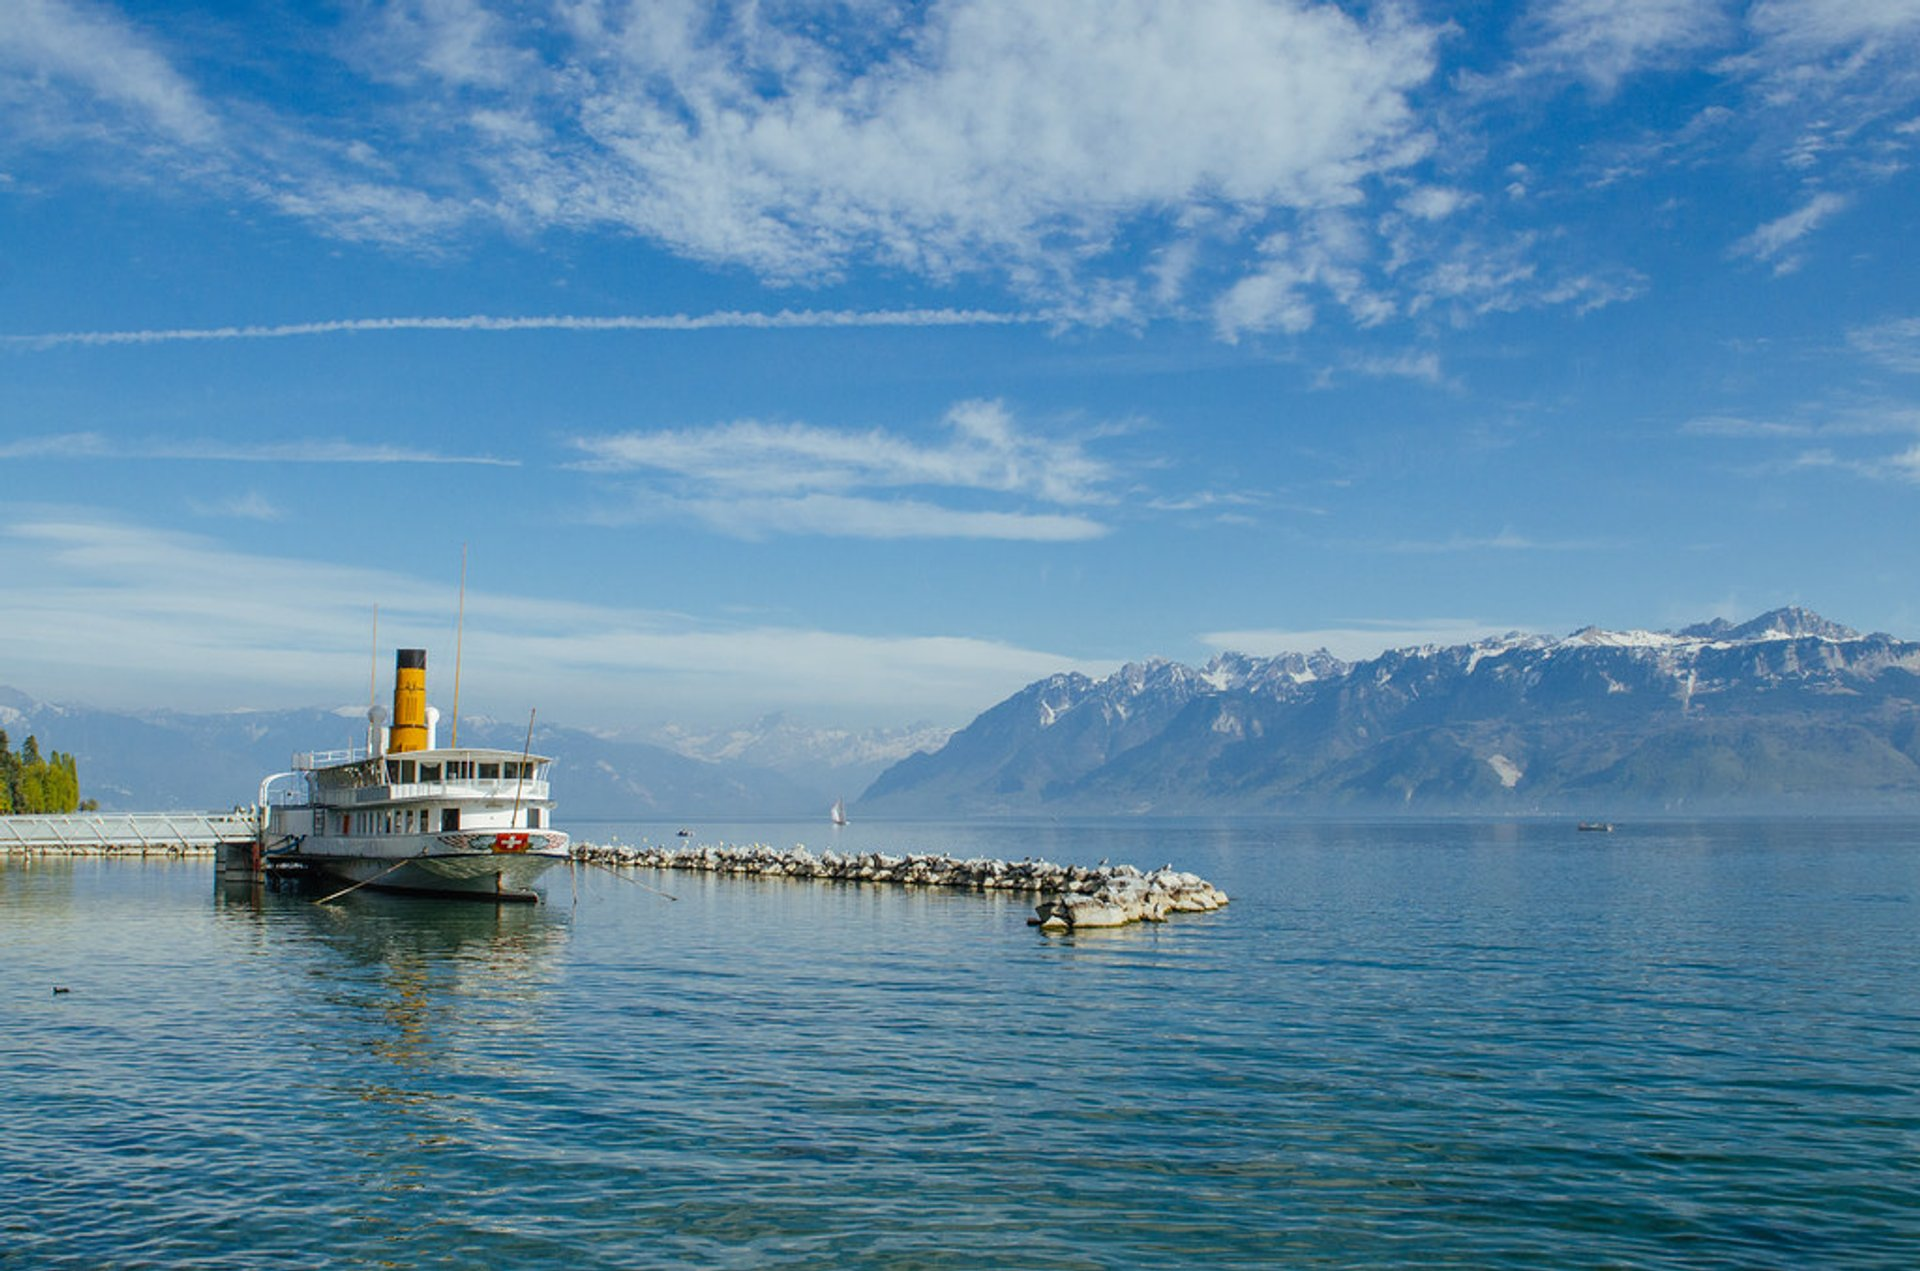 Lac Léman or Lake Geneva Cruise in Switzerland - Best Season 2019